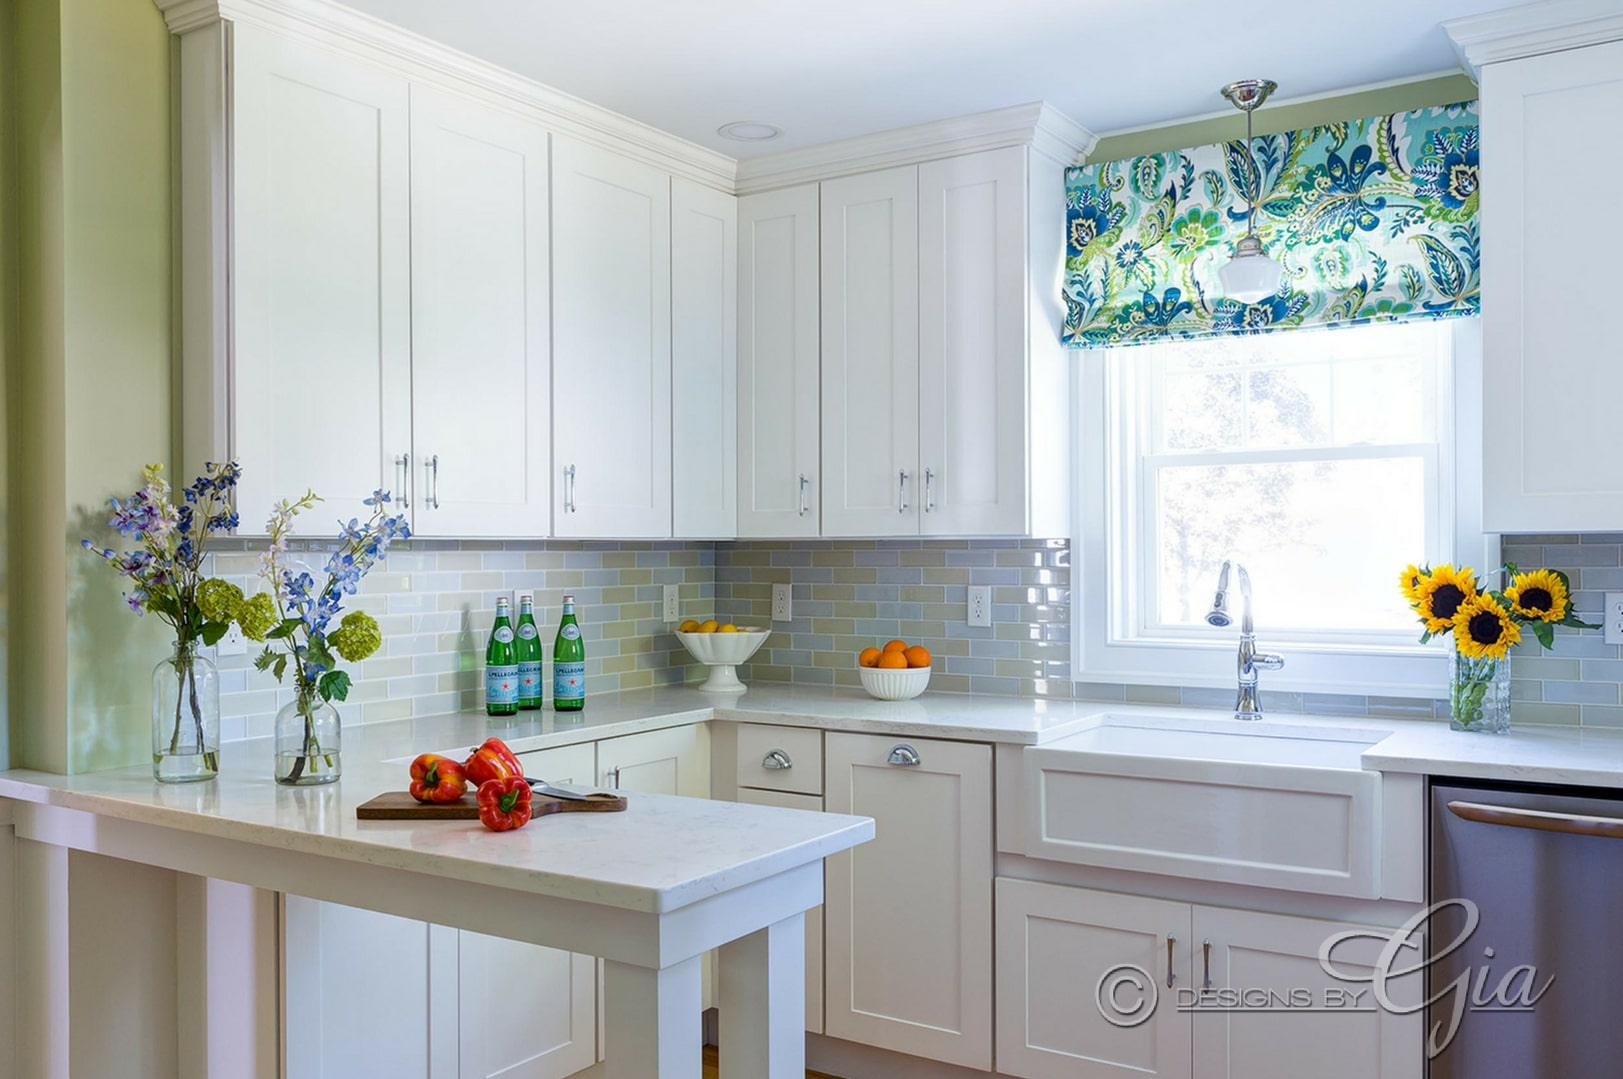 Kitchen Renovation- Historical home - Designs by Gia